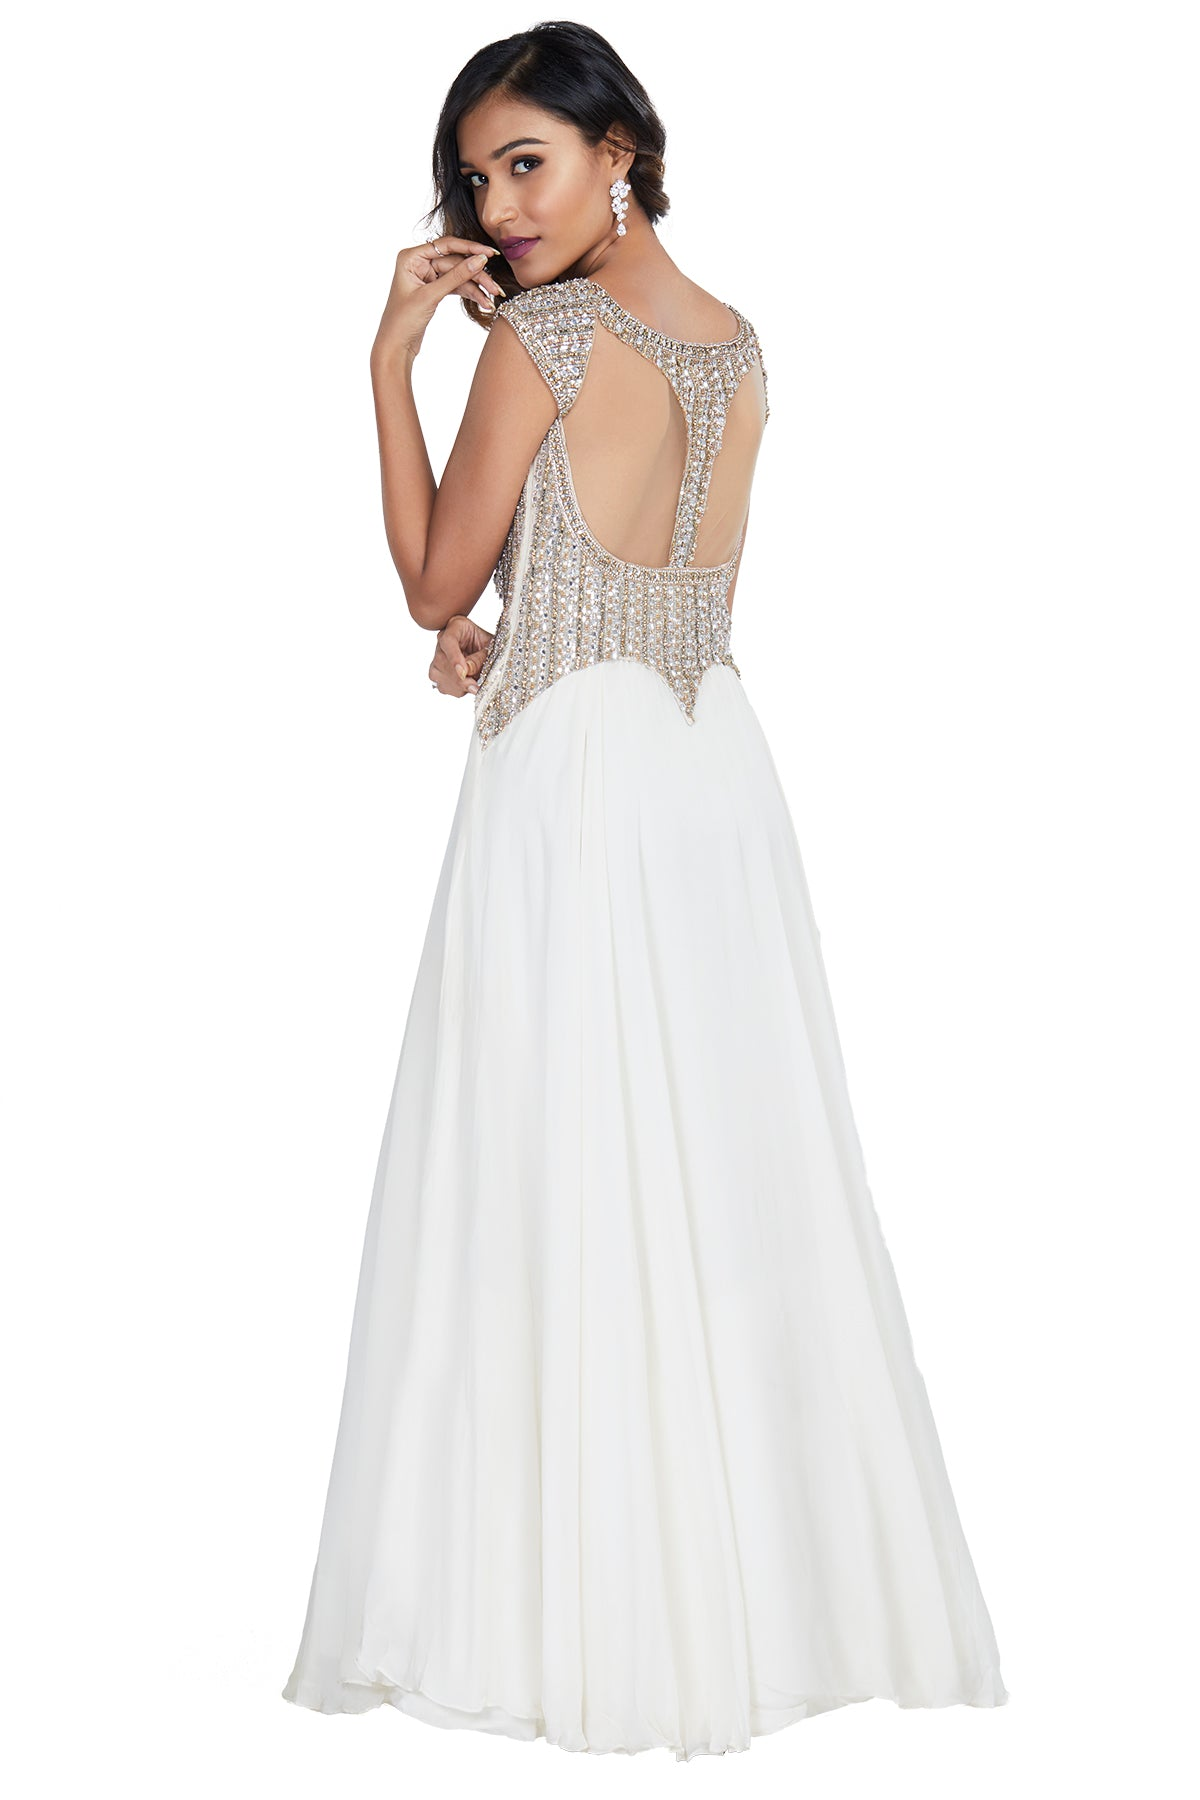 Embellished white gown